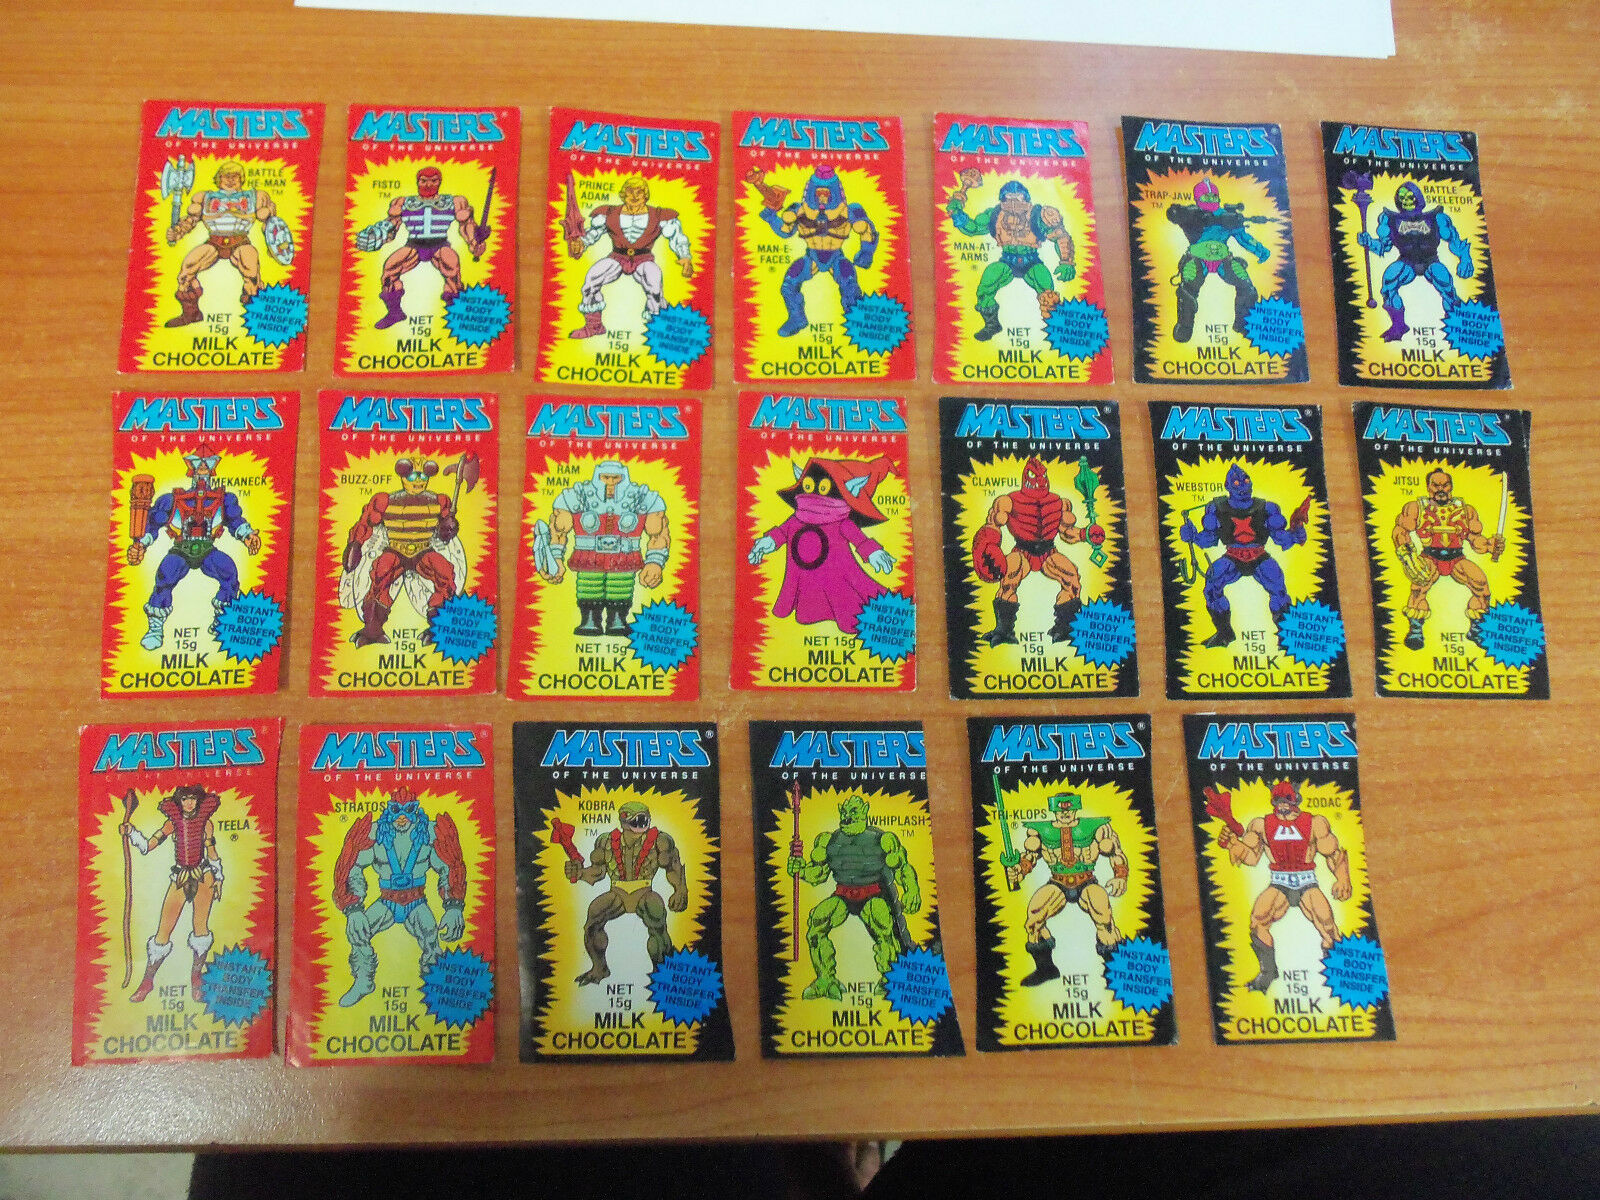 Rare Vintage Masters of the Universe Comp Set of 20 Chocolate Wrapper Tattoo